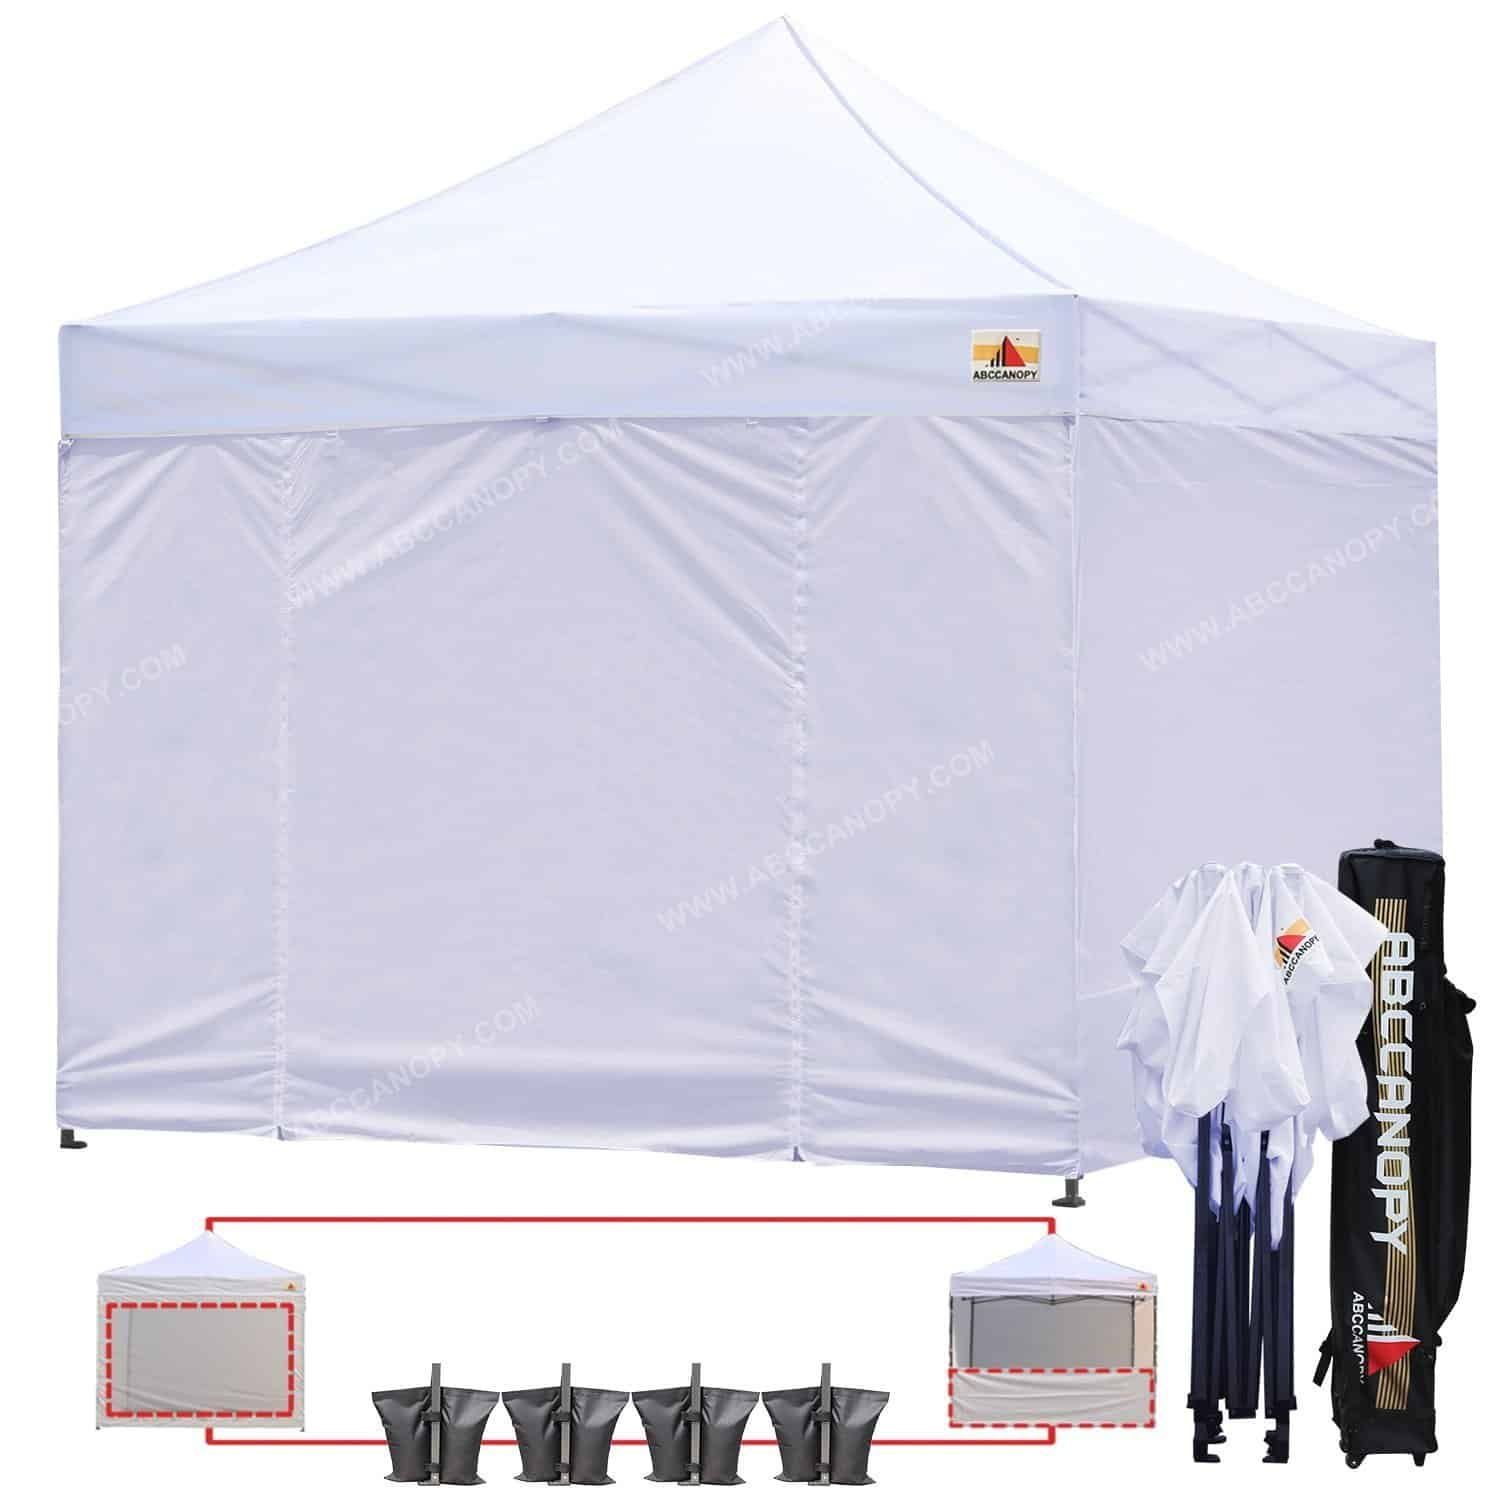 Pop Up Canopy Tents For Outdoor Party Ultimate Choices Of 2020 Canopy Tent Pop Up Canopy Tent Tent